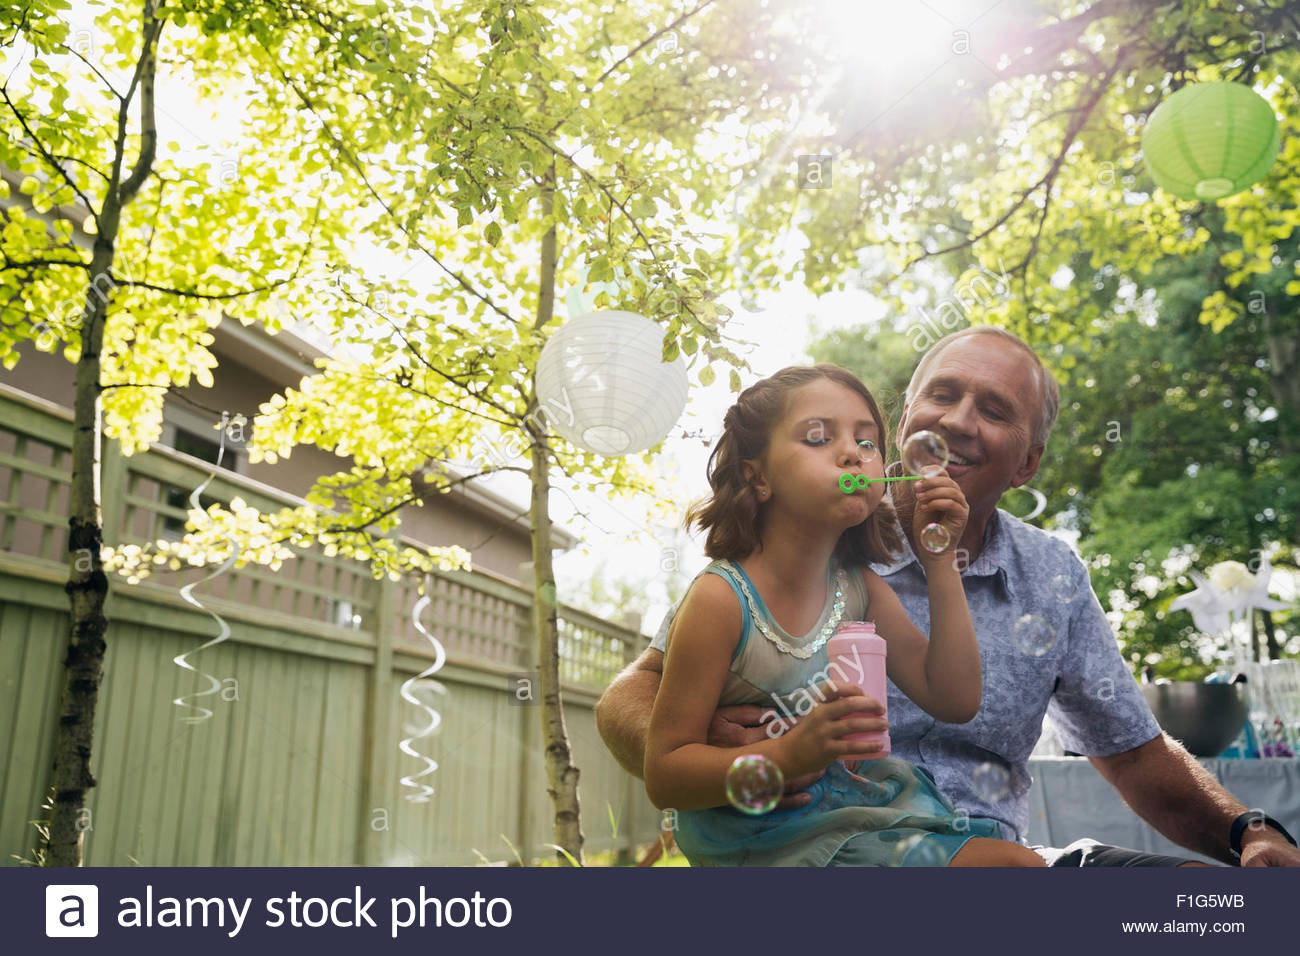 Grandfather watching granddaughter blow bubbles backyard - Stock Image